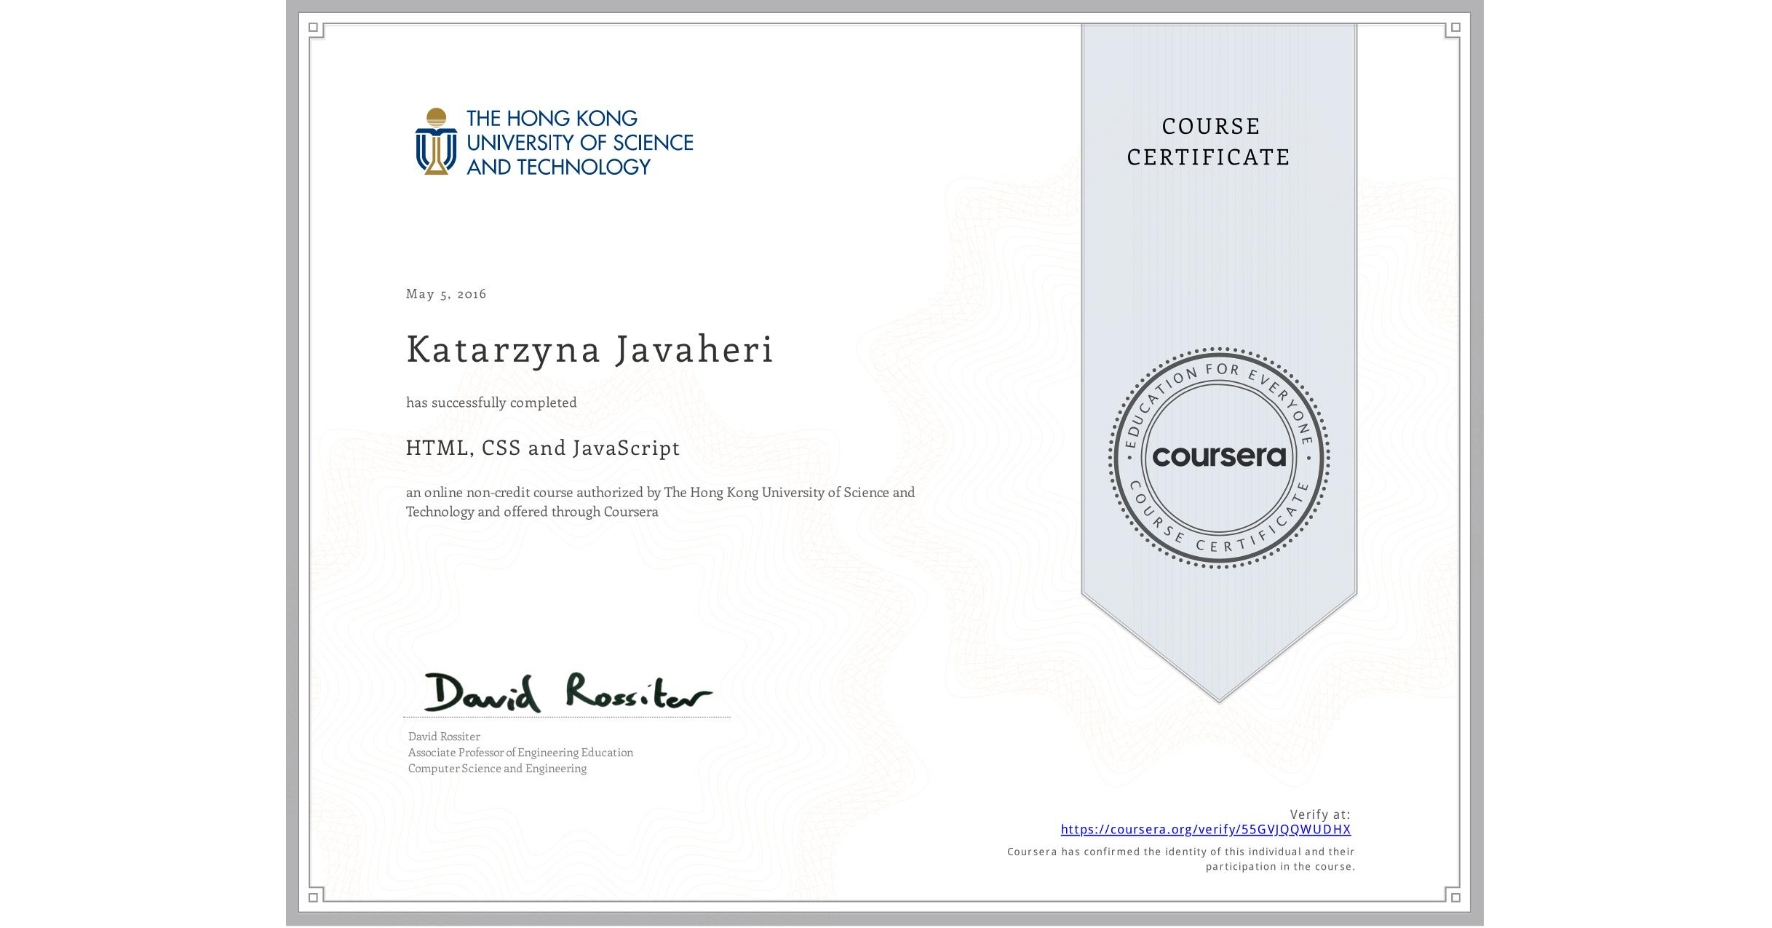 View certificate for Katarzyna Javaheri, HTML, CSS and JavaScript, an online non-credit course authorized by The Hong Kong University of Science and Technology and offered through Coursera